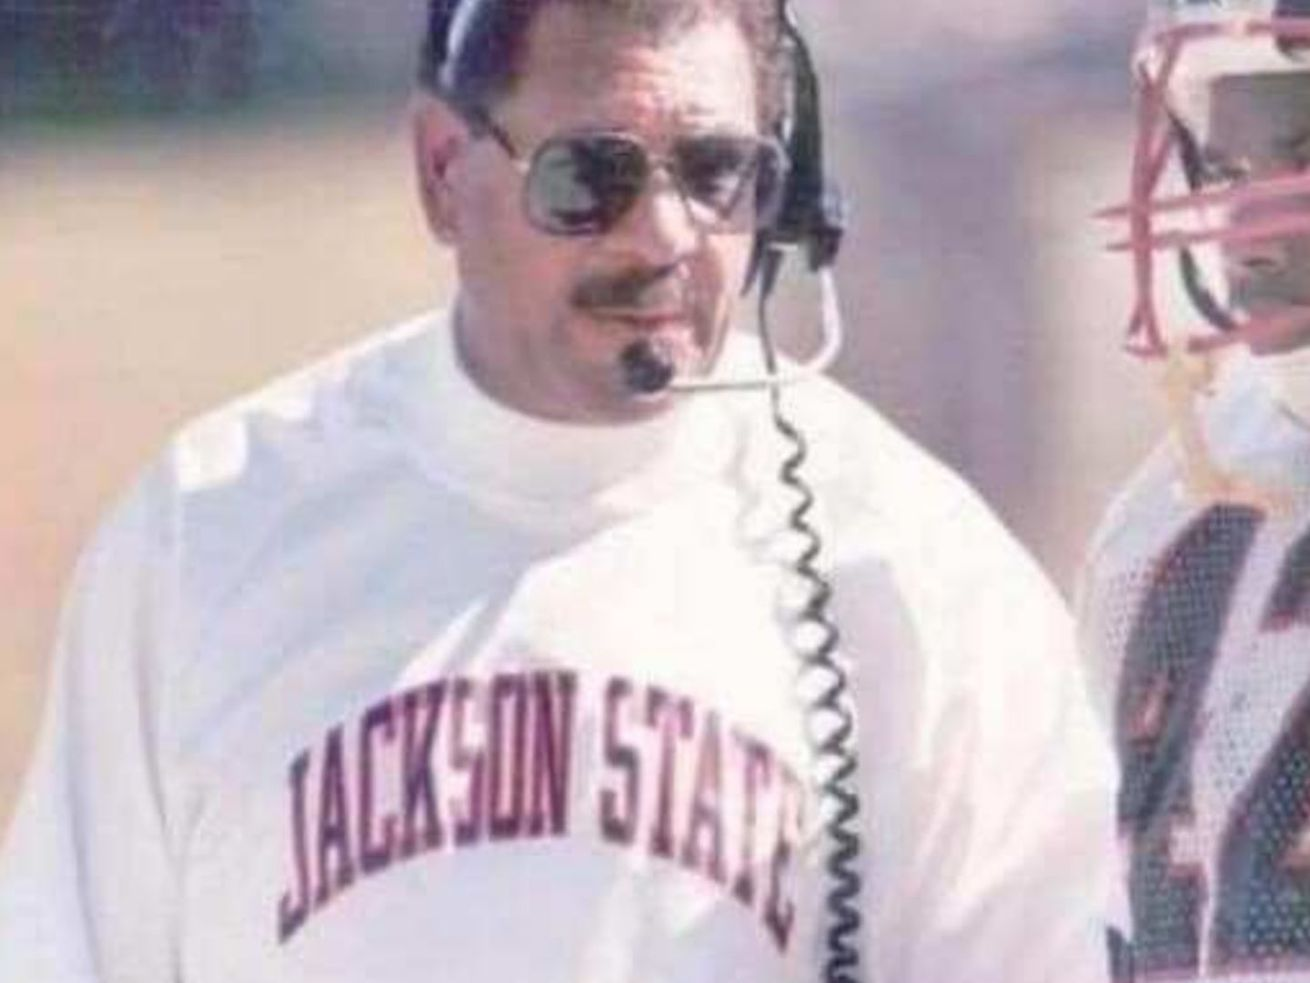 Jackson State's Hall of Fame football coach W.C. Gorden has died at age 90.